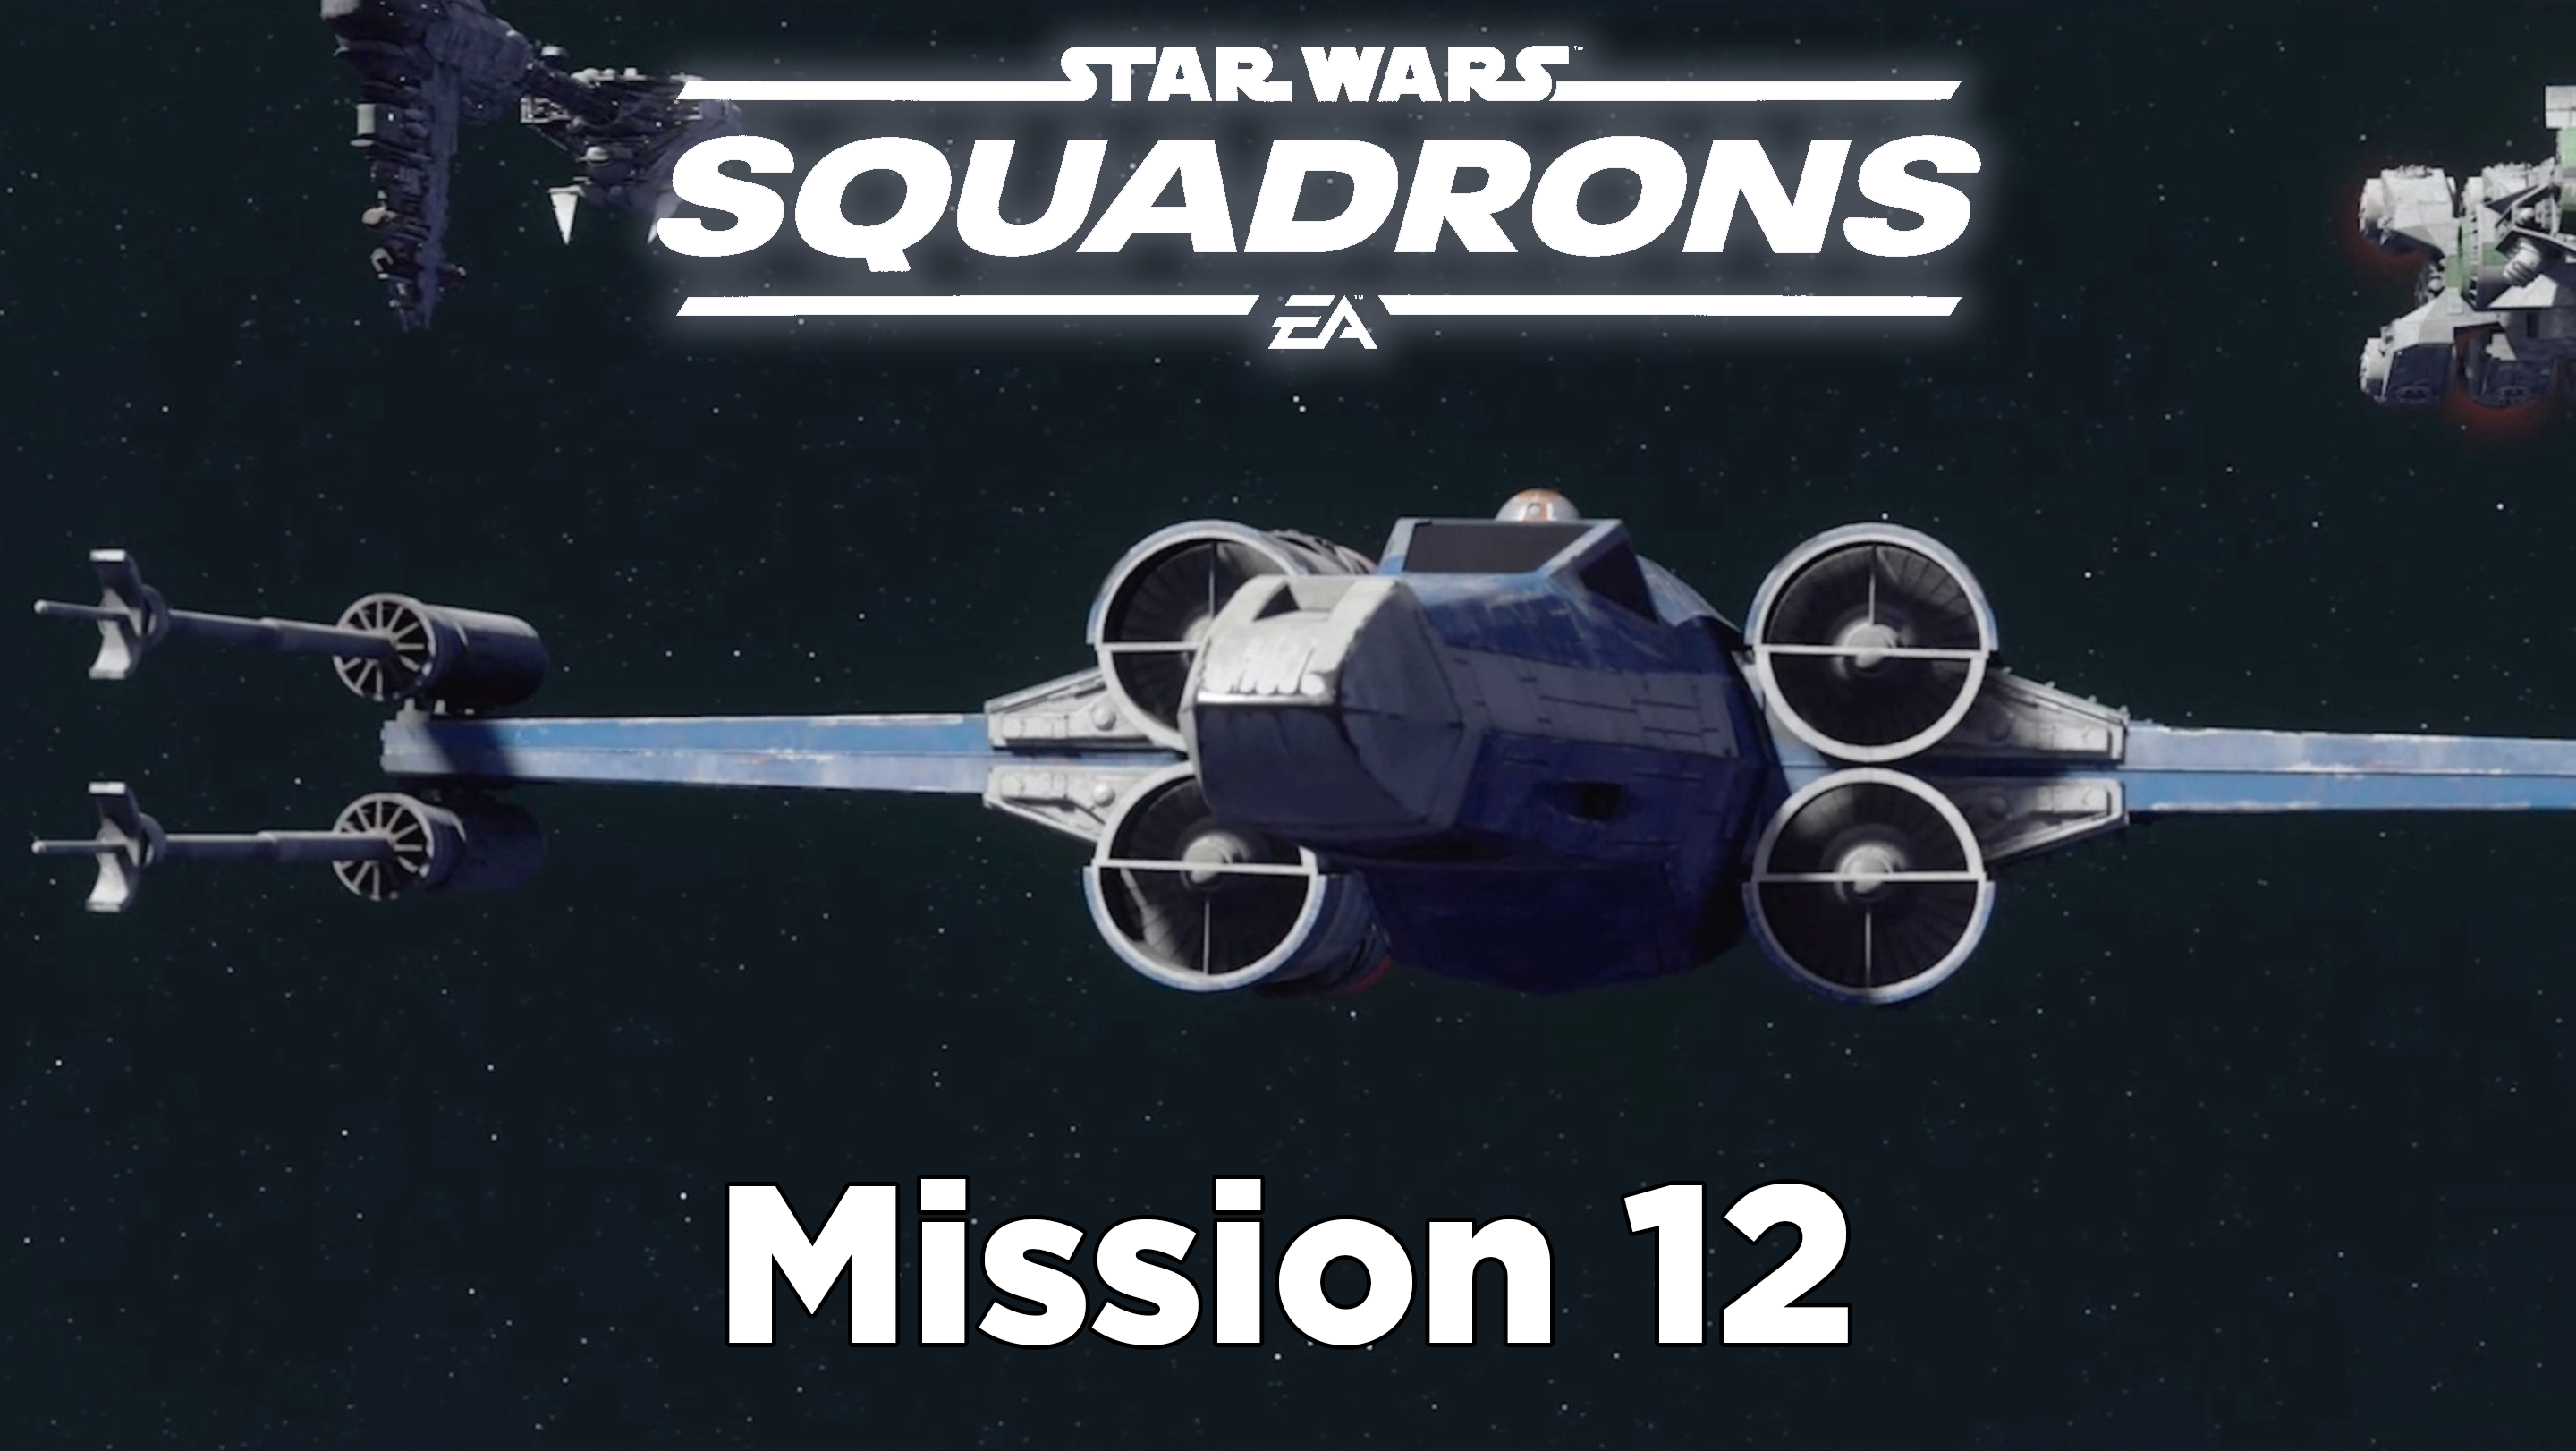 star wars squadrons mission 12 rally the new republic walkthrough header